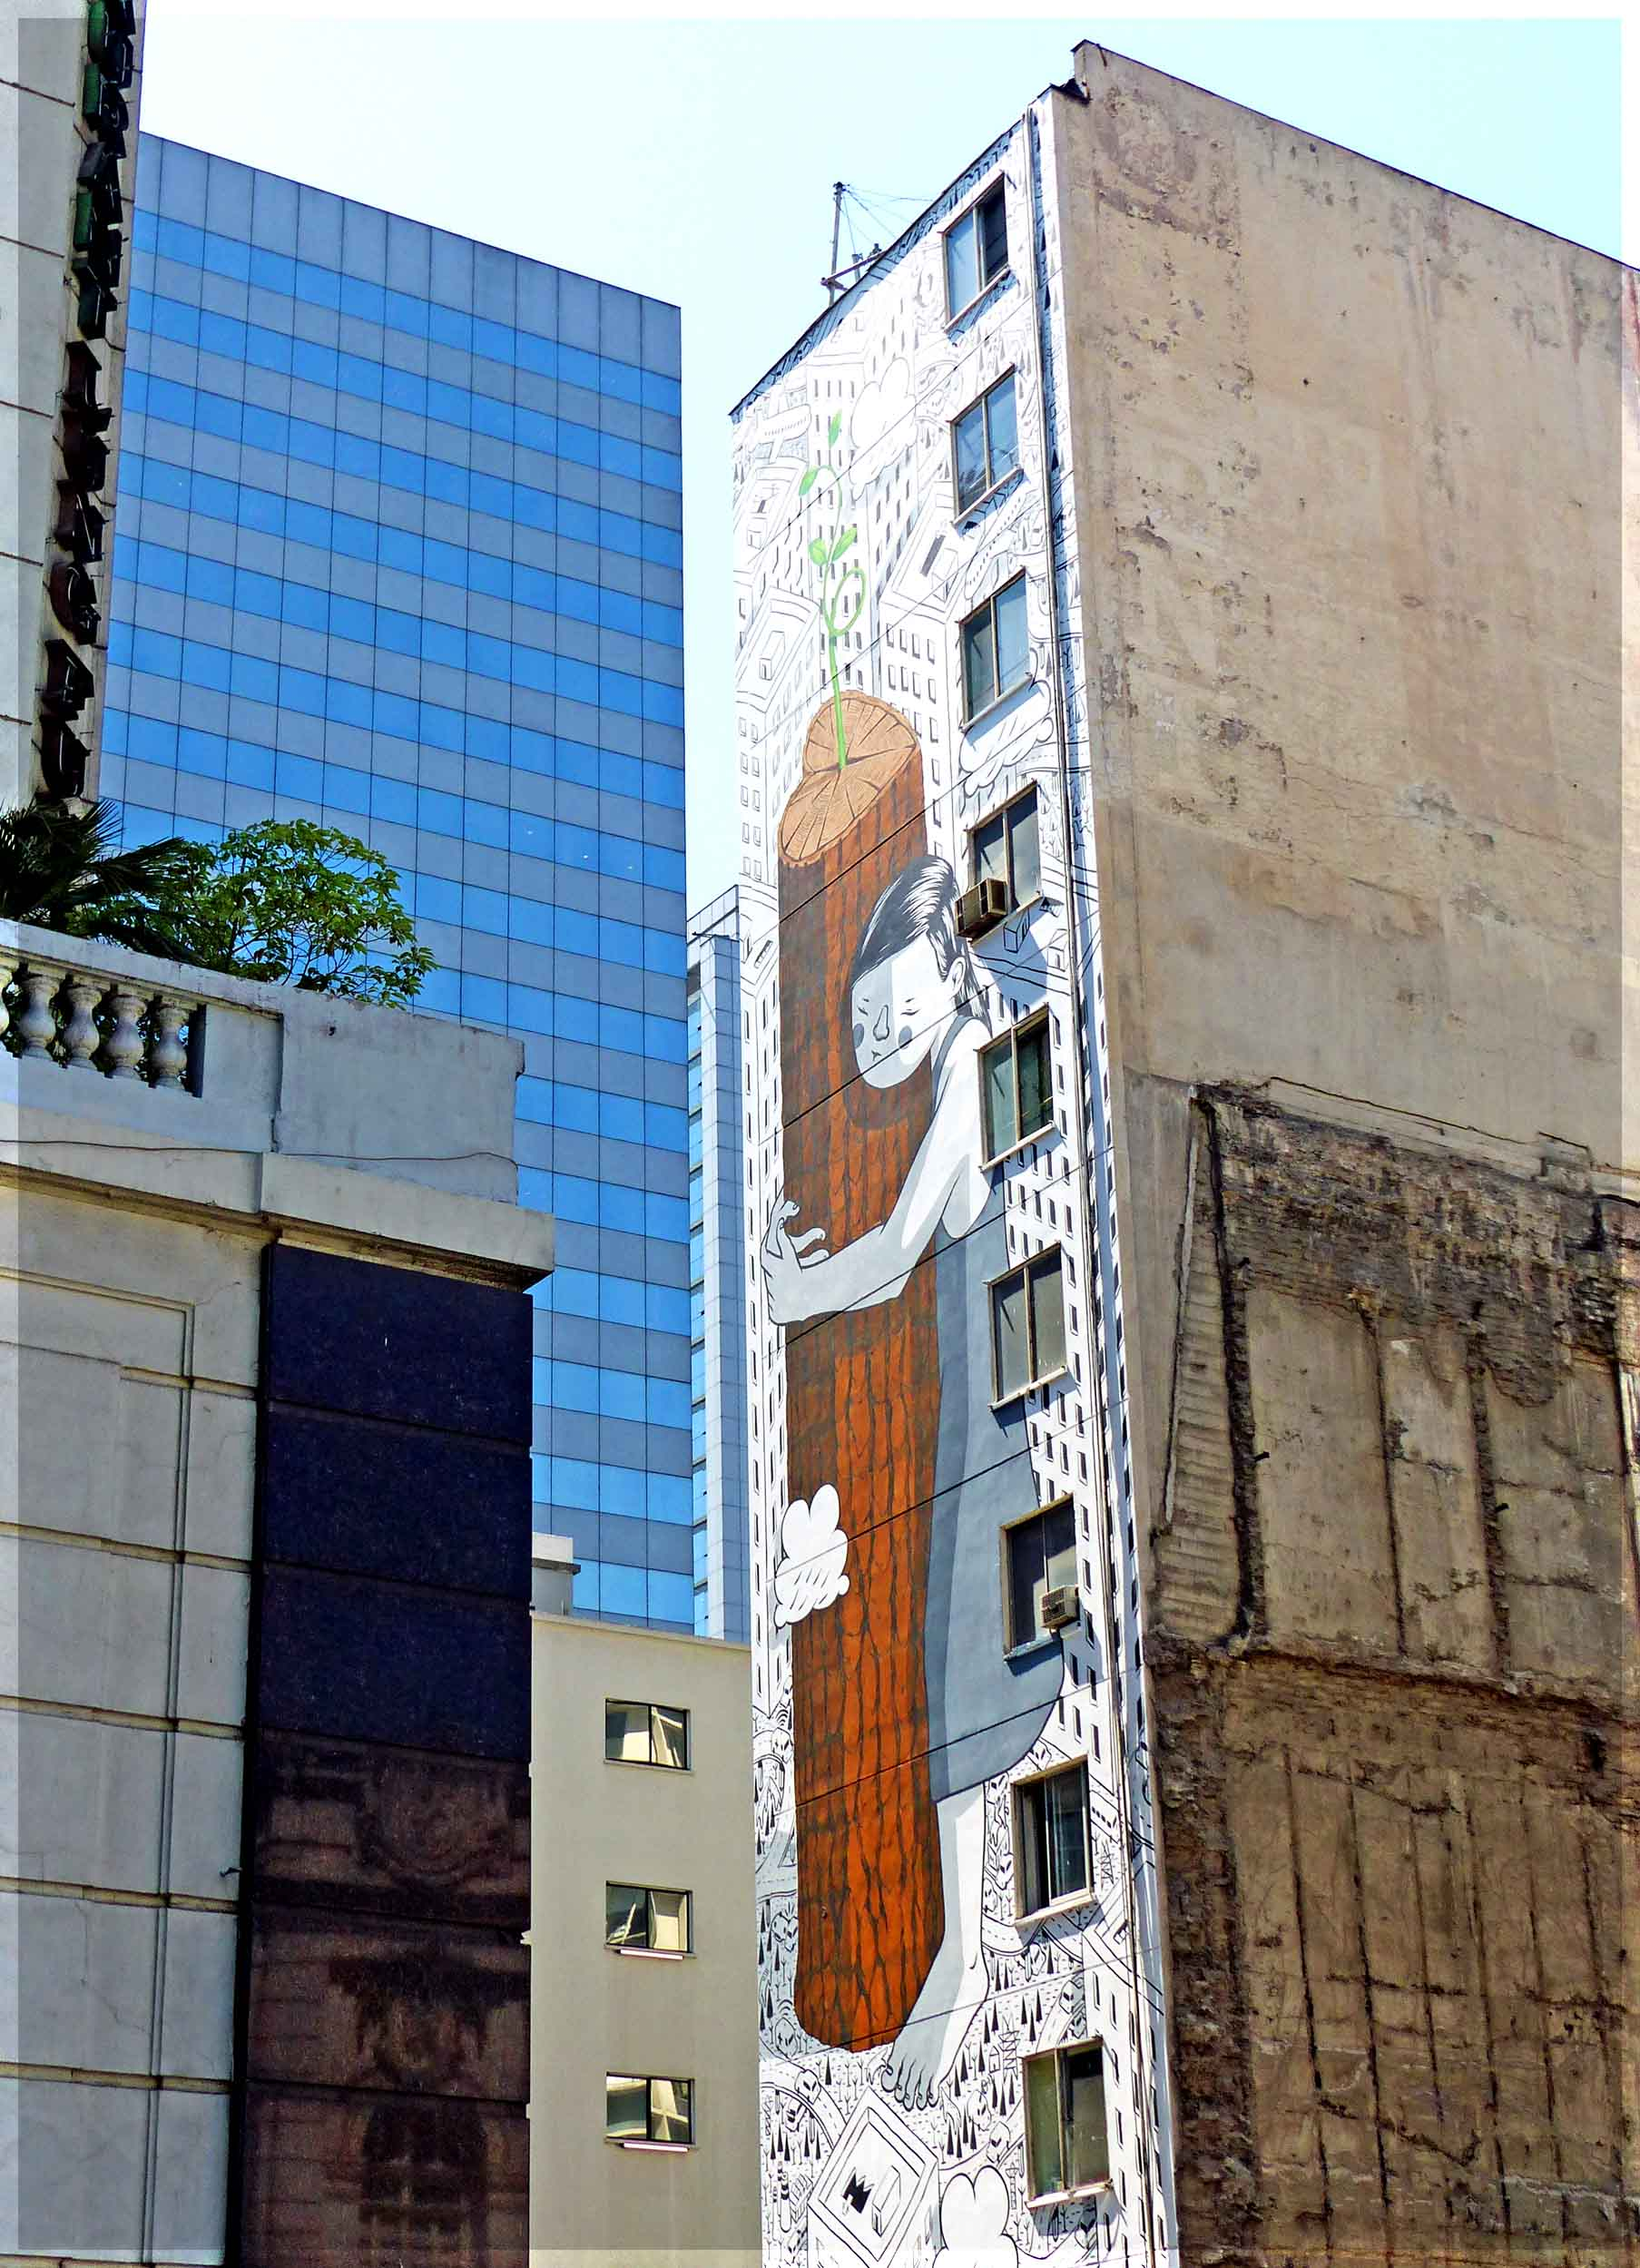 Tall building with wall painting